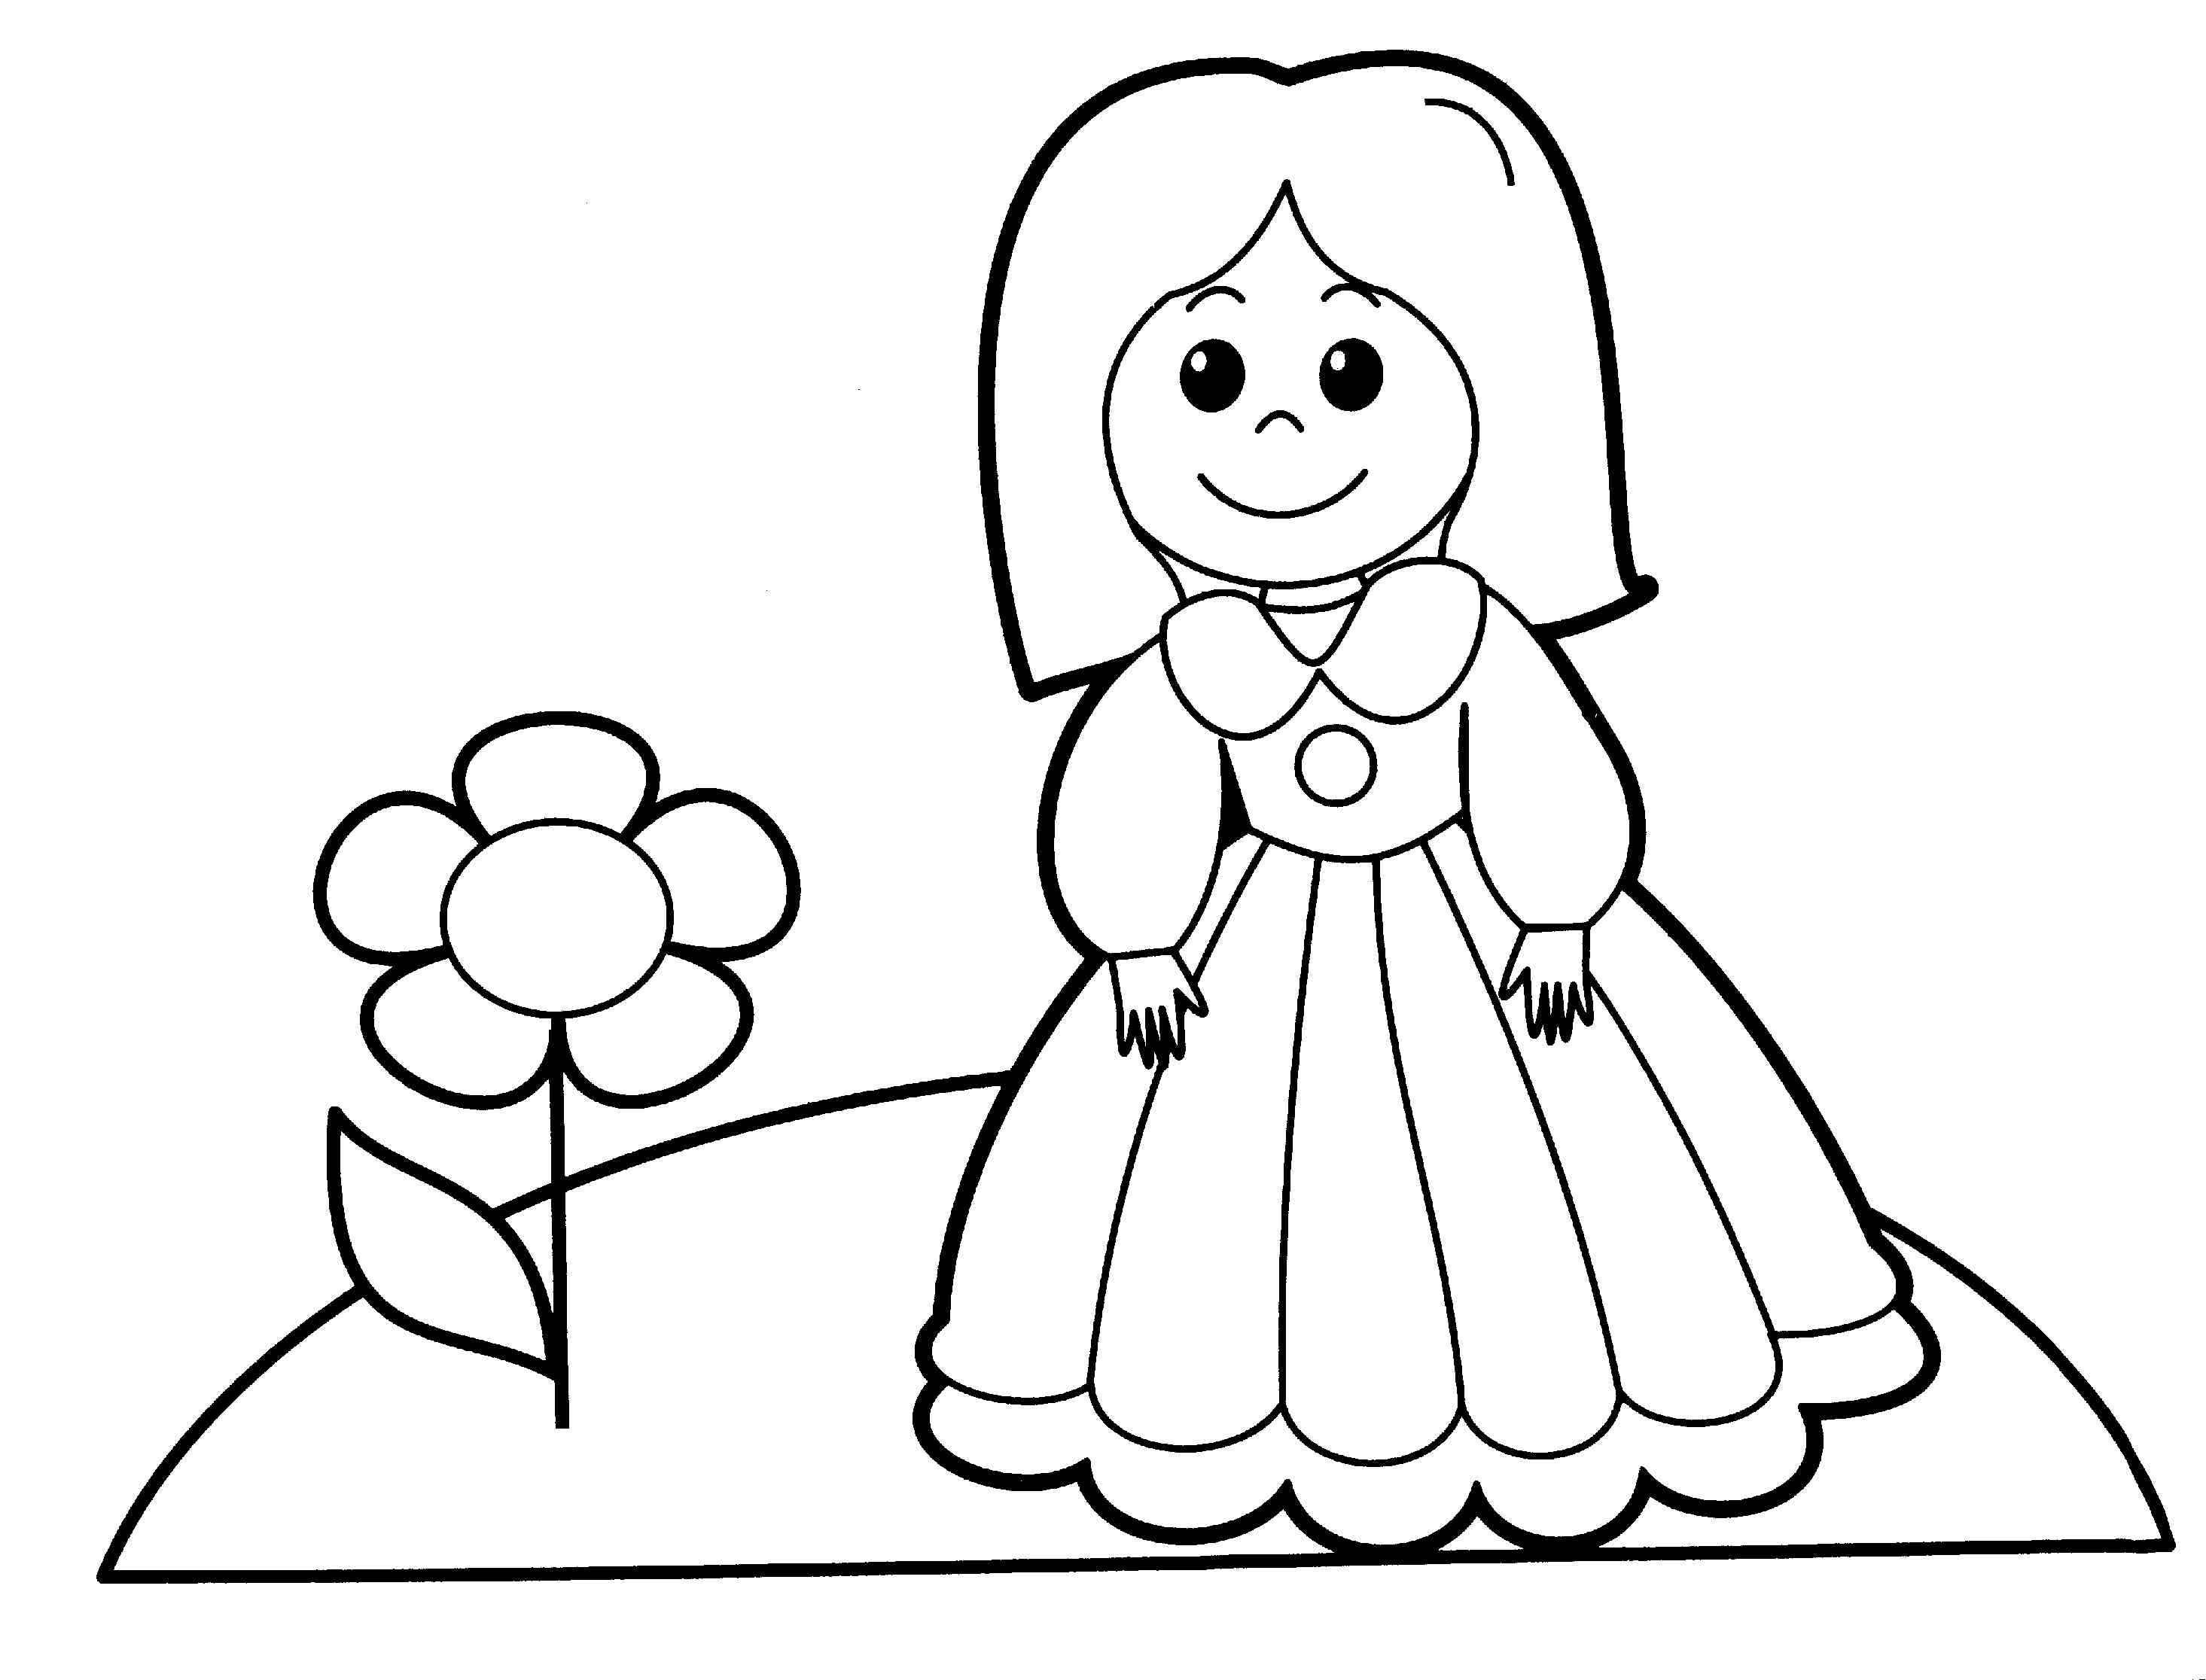 Coloring Pages Baby Doll Coloring Page free printable baby doll coloring pages az american girl 25 coloring